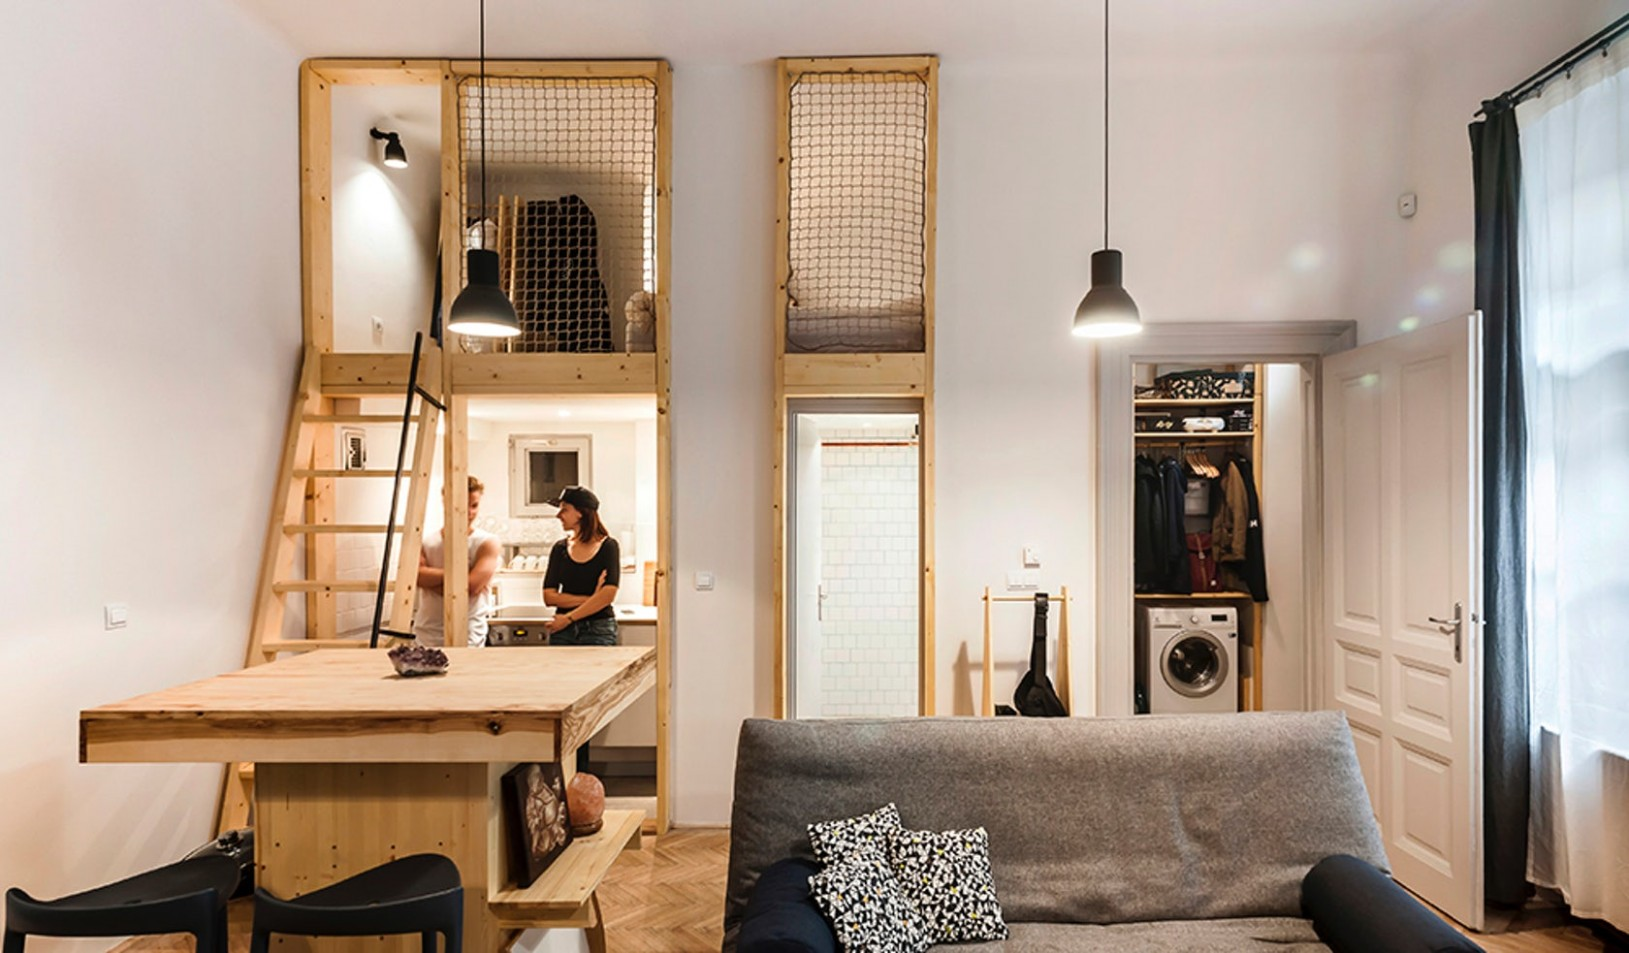 Architectural Drawings: 8 Clever Plans for Tiny Apartments  - Tiny Apartment Design Under 200 Sf